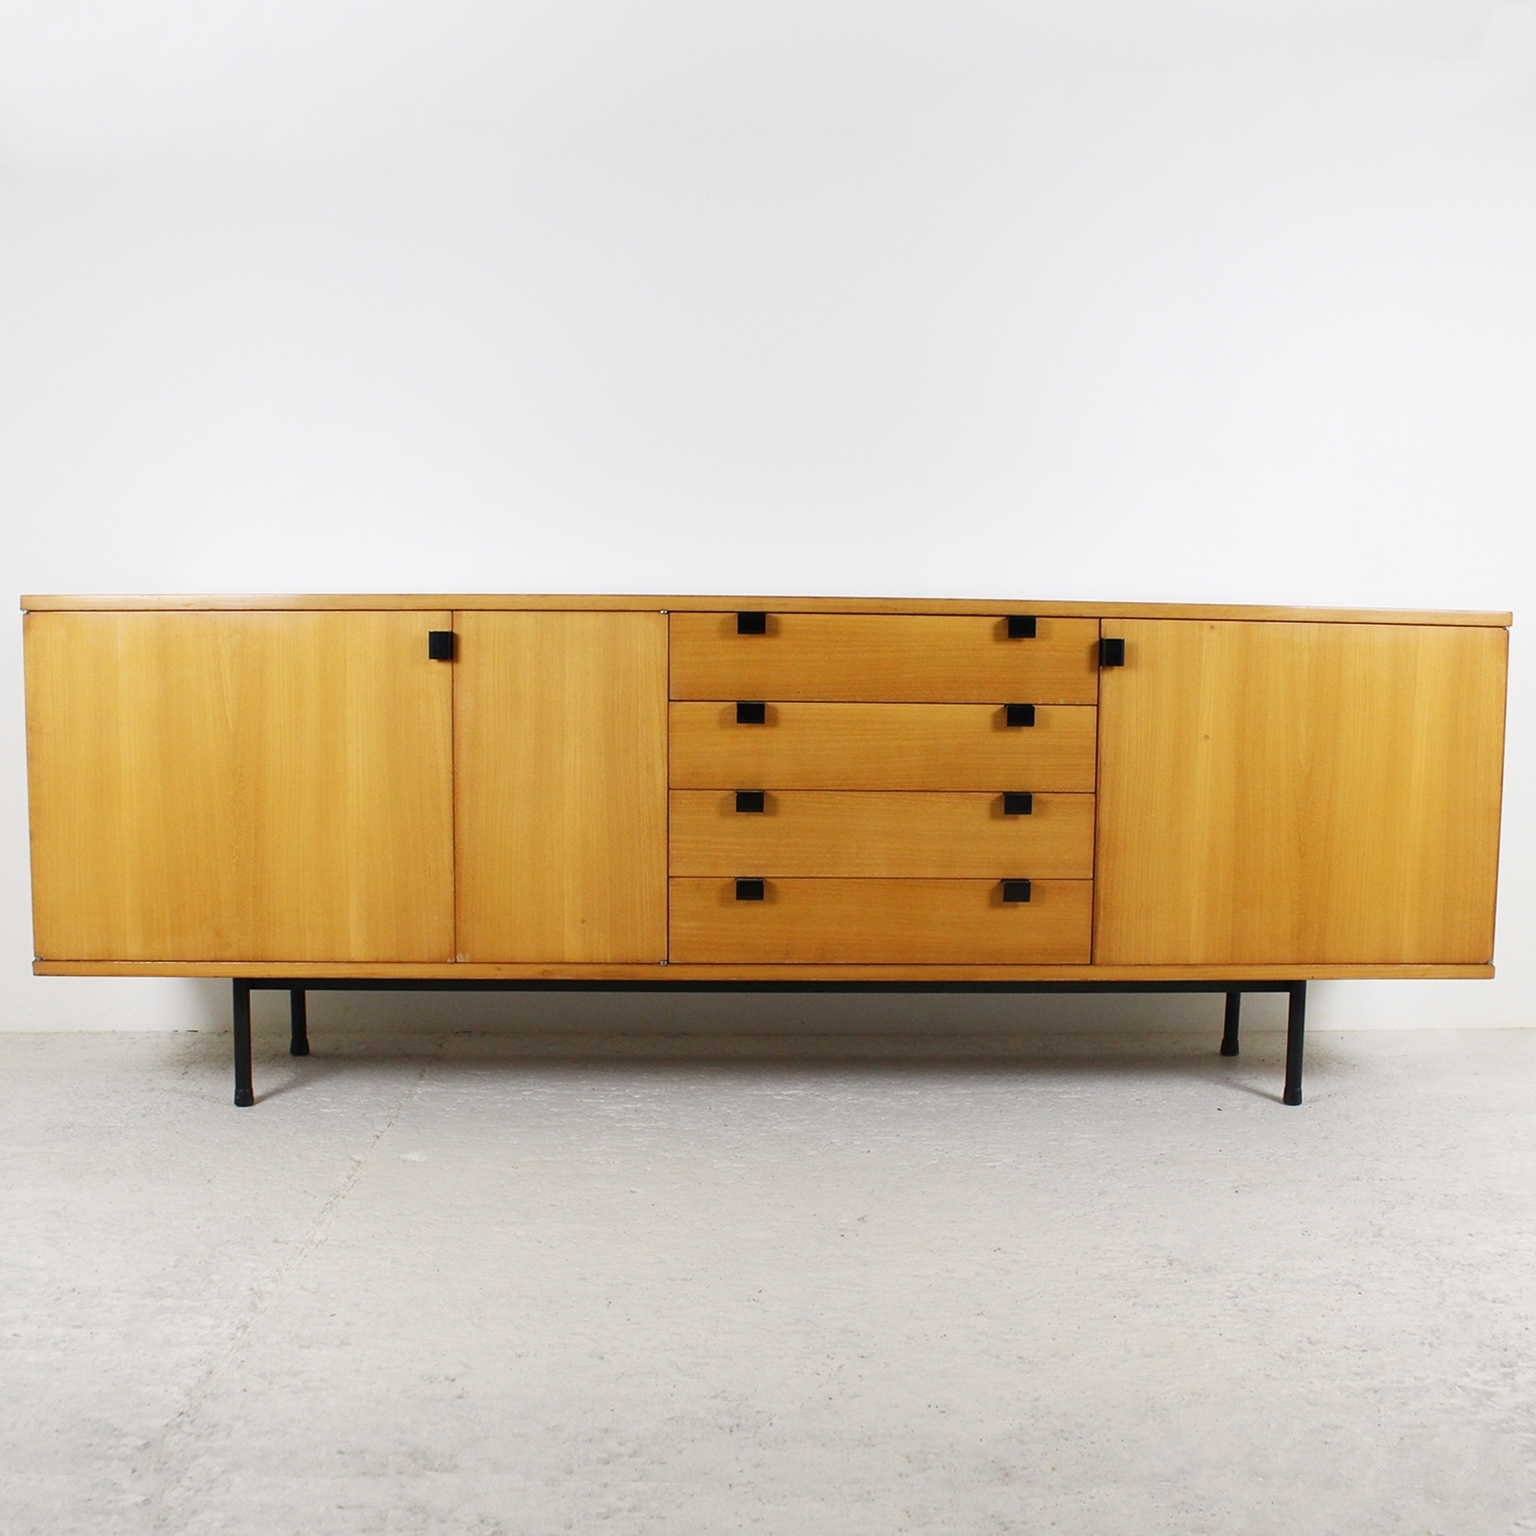 1950's Sideboardalain Richard within Natural Oak Wood 78 Inch Sideboards (Image 1 of 30)